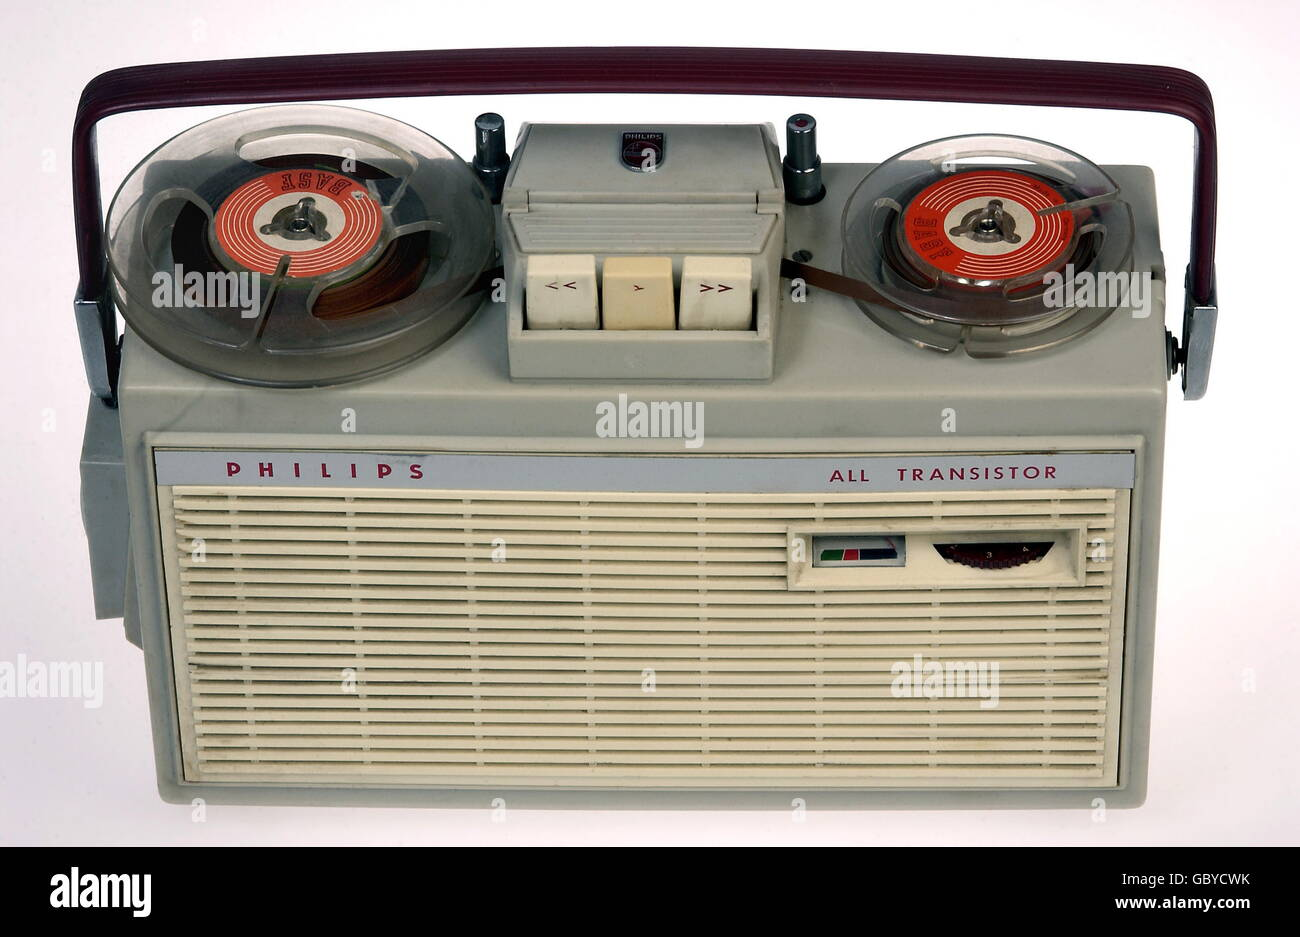 Transistor 1960s Stock Photos Images Alamy The In A Century Of Electronics Technics Tape Recorders Portable Philips Recorder All For Reporter